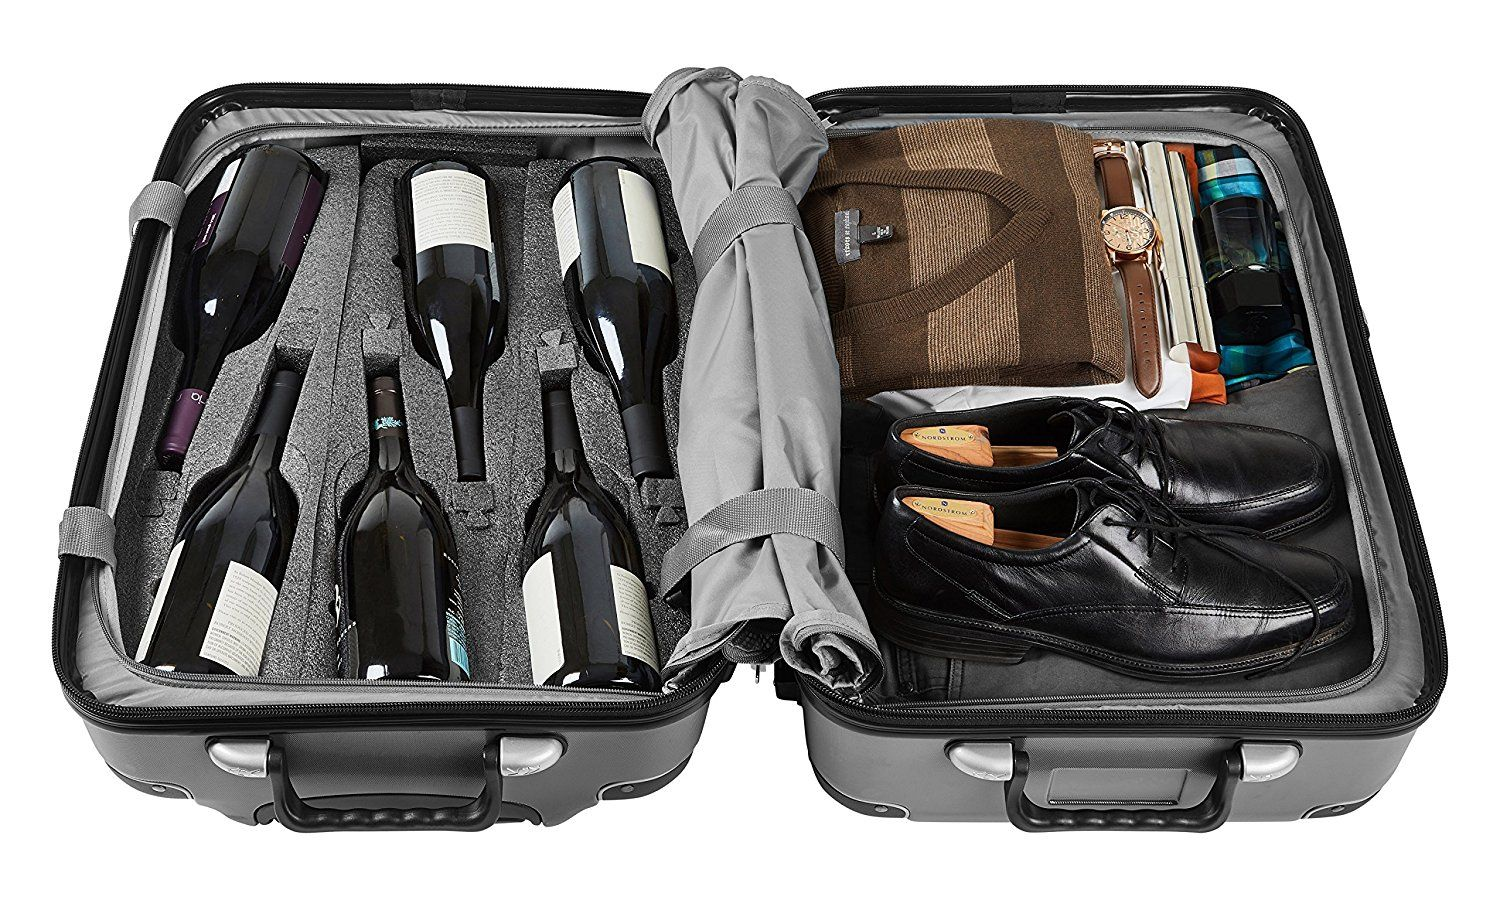 Vin Garde Valise Grande Standard Size Wine Travel Suitcase All Purpose Luggage Up To 12 Bot Wine Travel Suitcase Traveling Must Have Travel Accessories